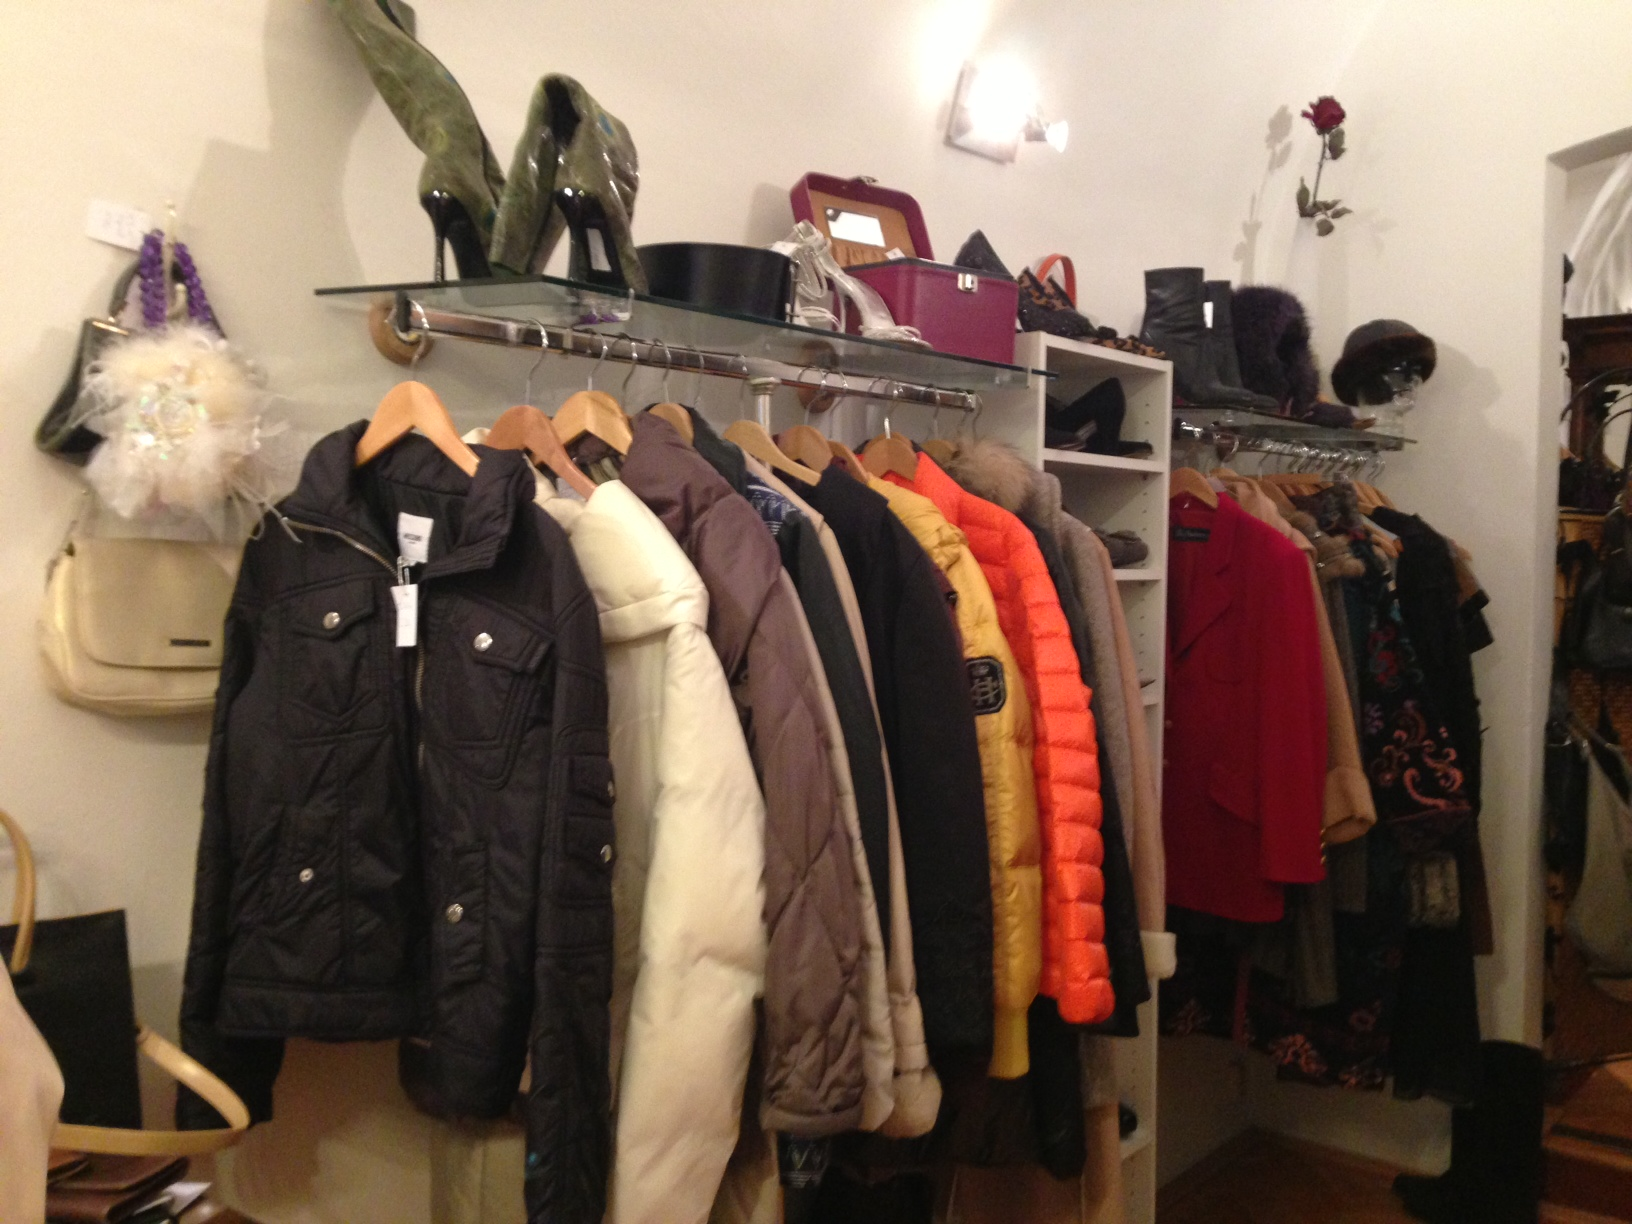 Picking through prague 39 s resale shops huffpost for High end consignment shops